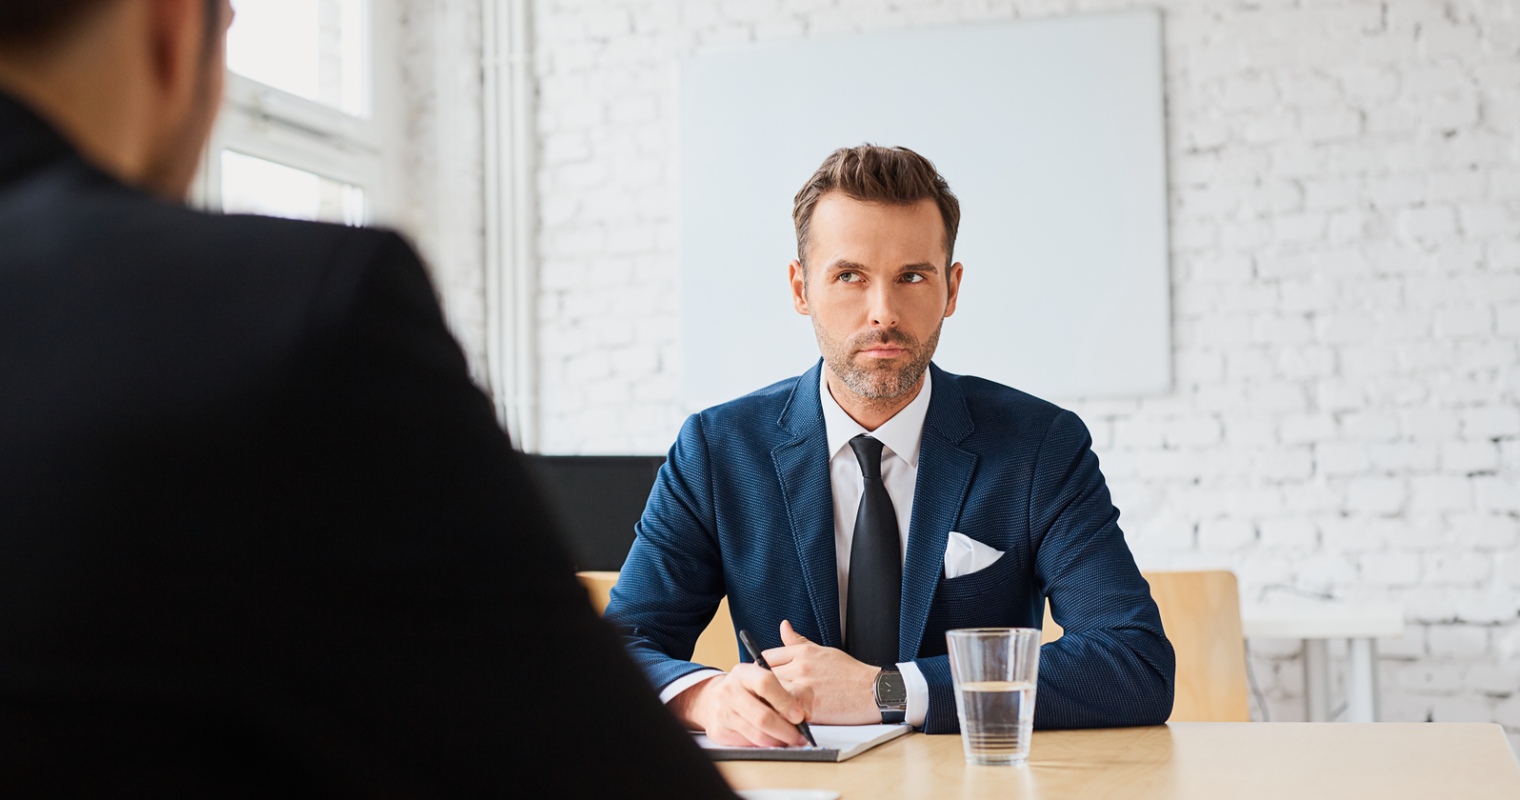 8 SEO Job Interview Questions That Cut Through the BS